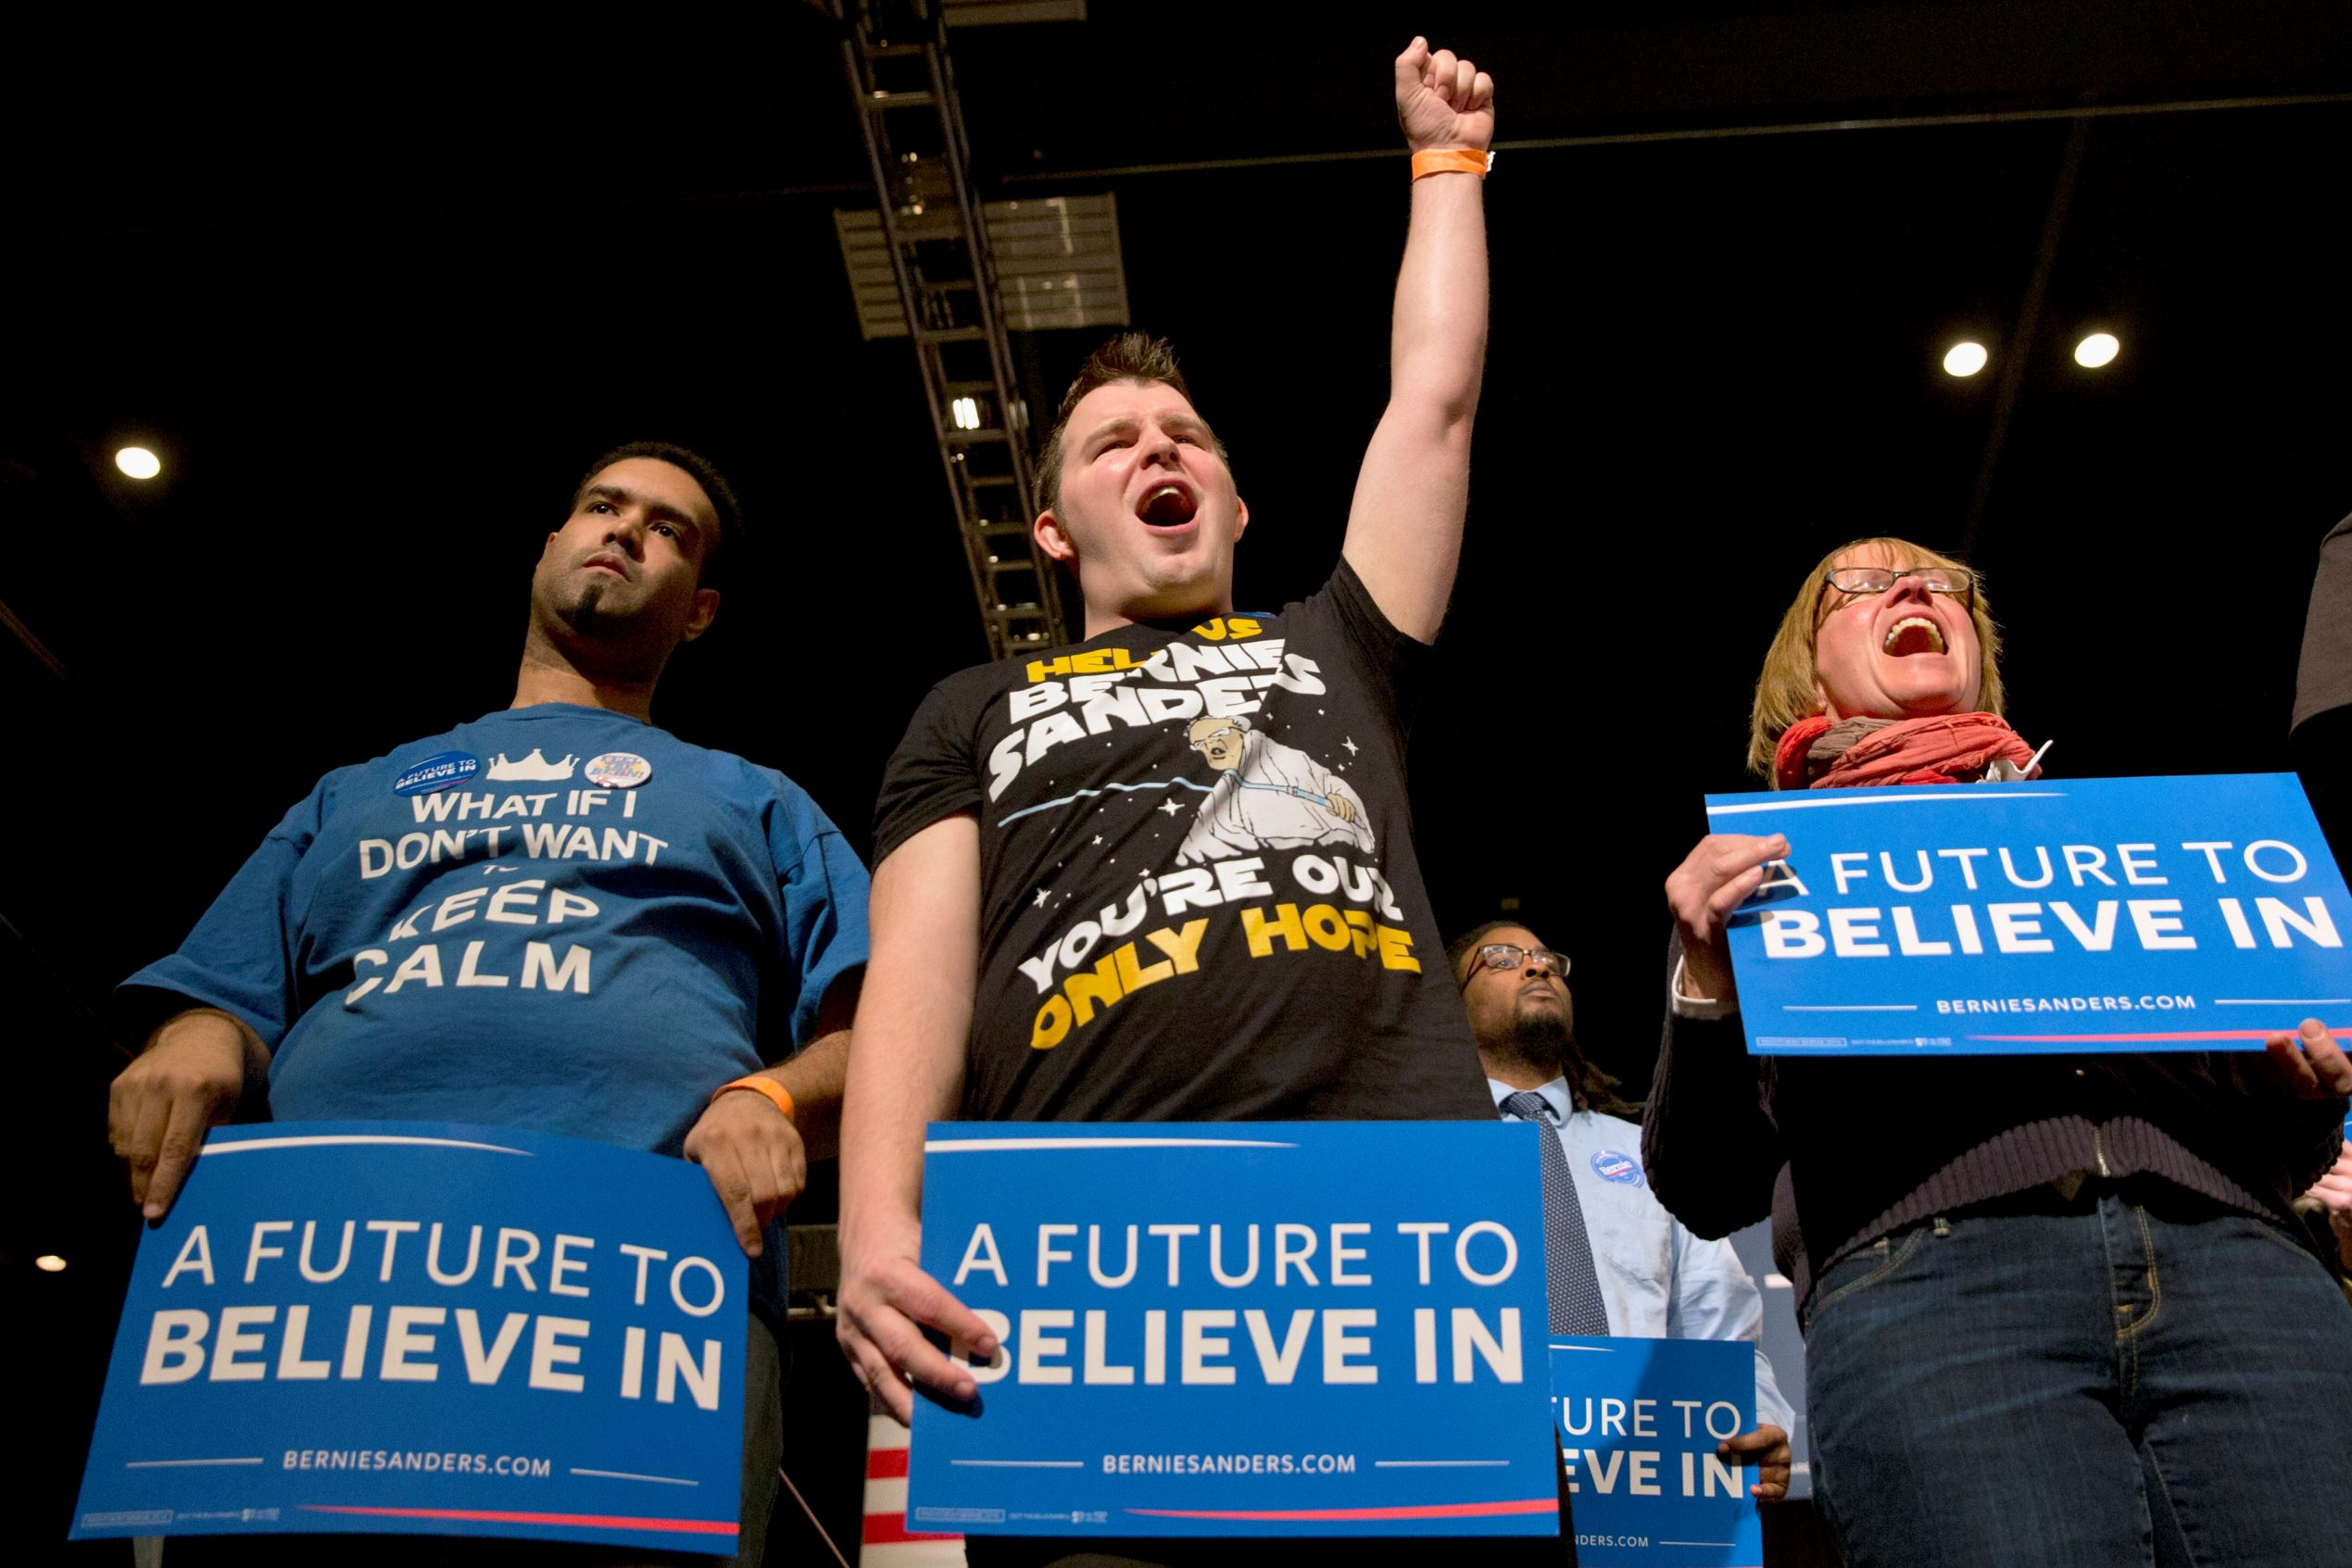 Members of the audience cheer for Democratic presidential candidate, Sen. Bernie Sanders, I-Vt. as he speaks during a campaign rally in Minneapolis, Minn. on  Feb. 29, the day before Super Tuesday.